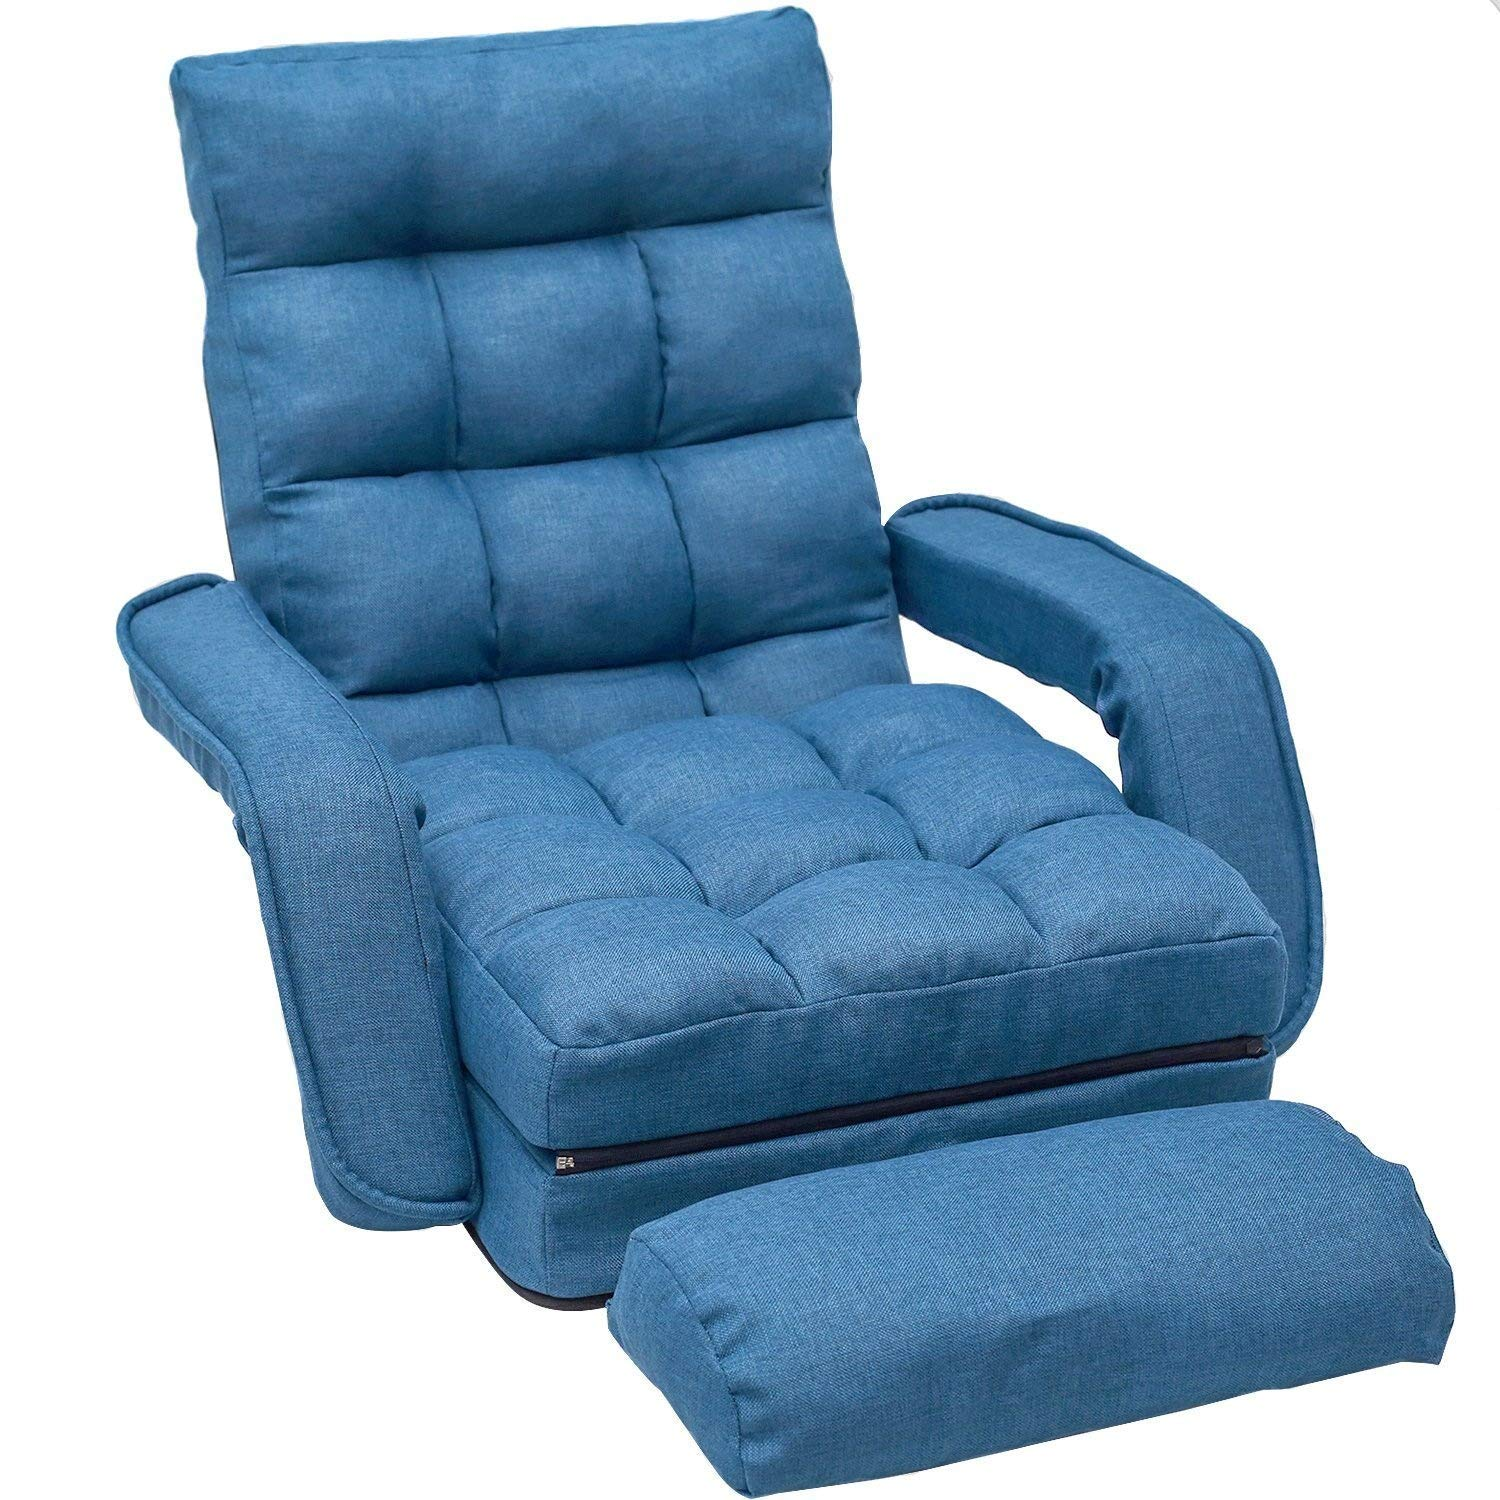 Merax Pil Sofa Lounger Bed with Armrests and a Pillow, (Blue) by Merax